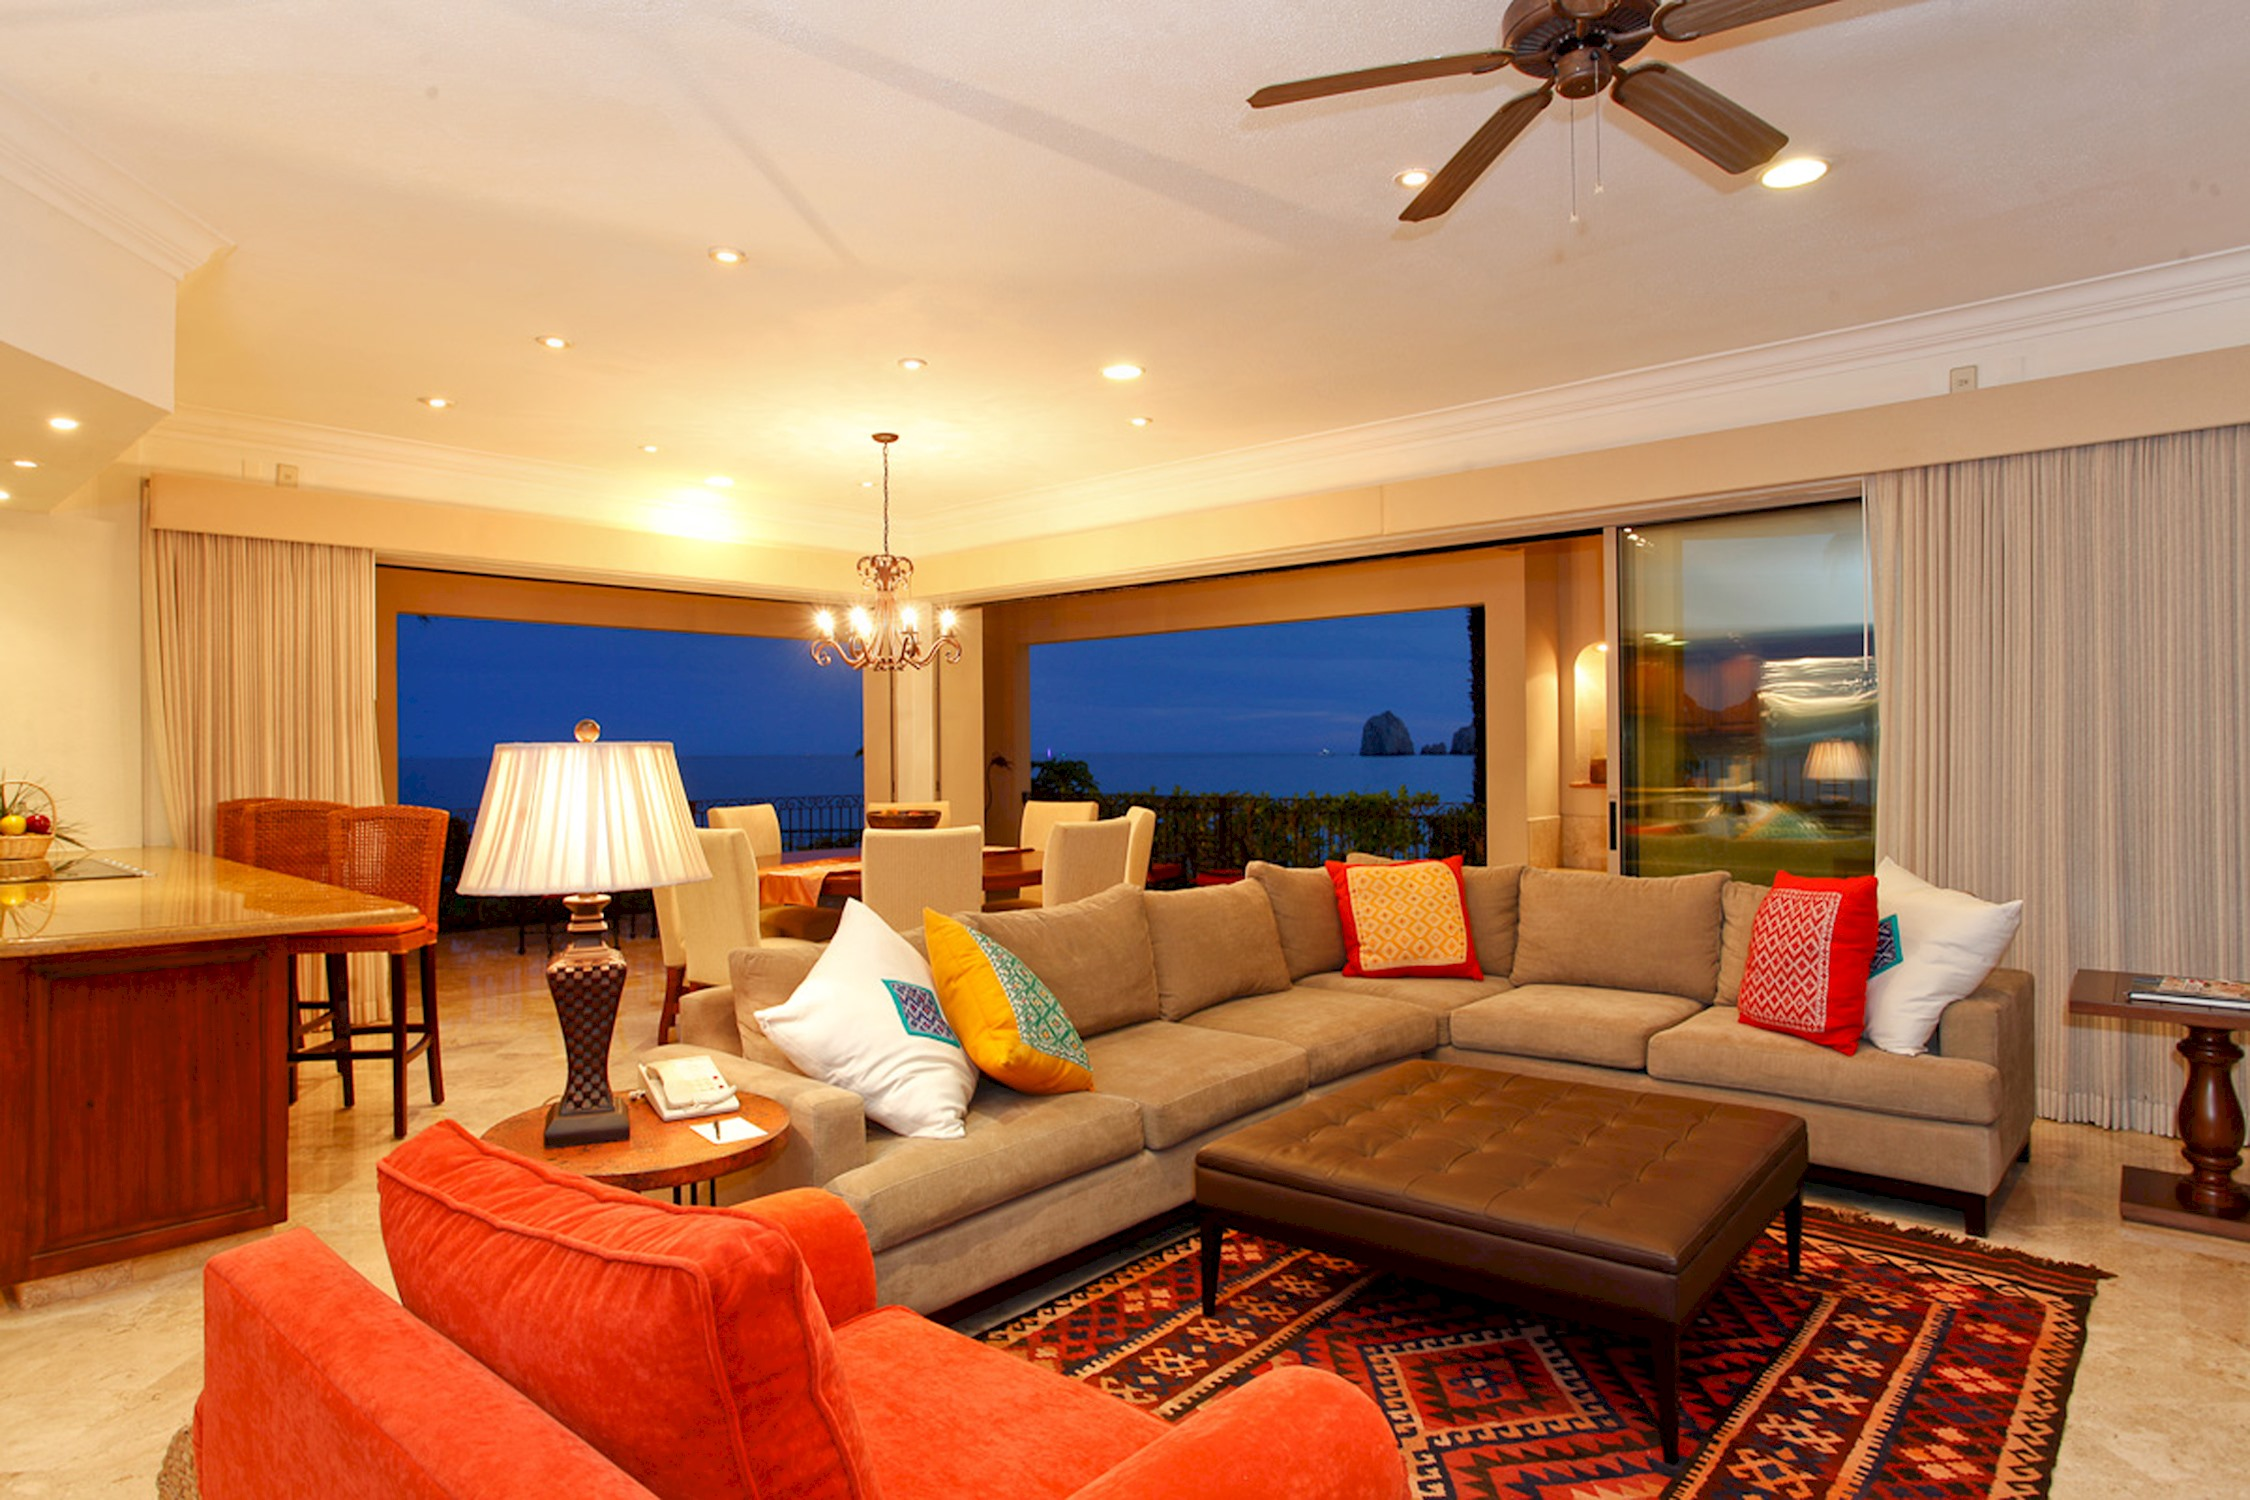 Apartment Panoramic Oceanfront Villa With Amazing Views Of The Ocean - 3101 photo 22101759